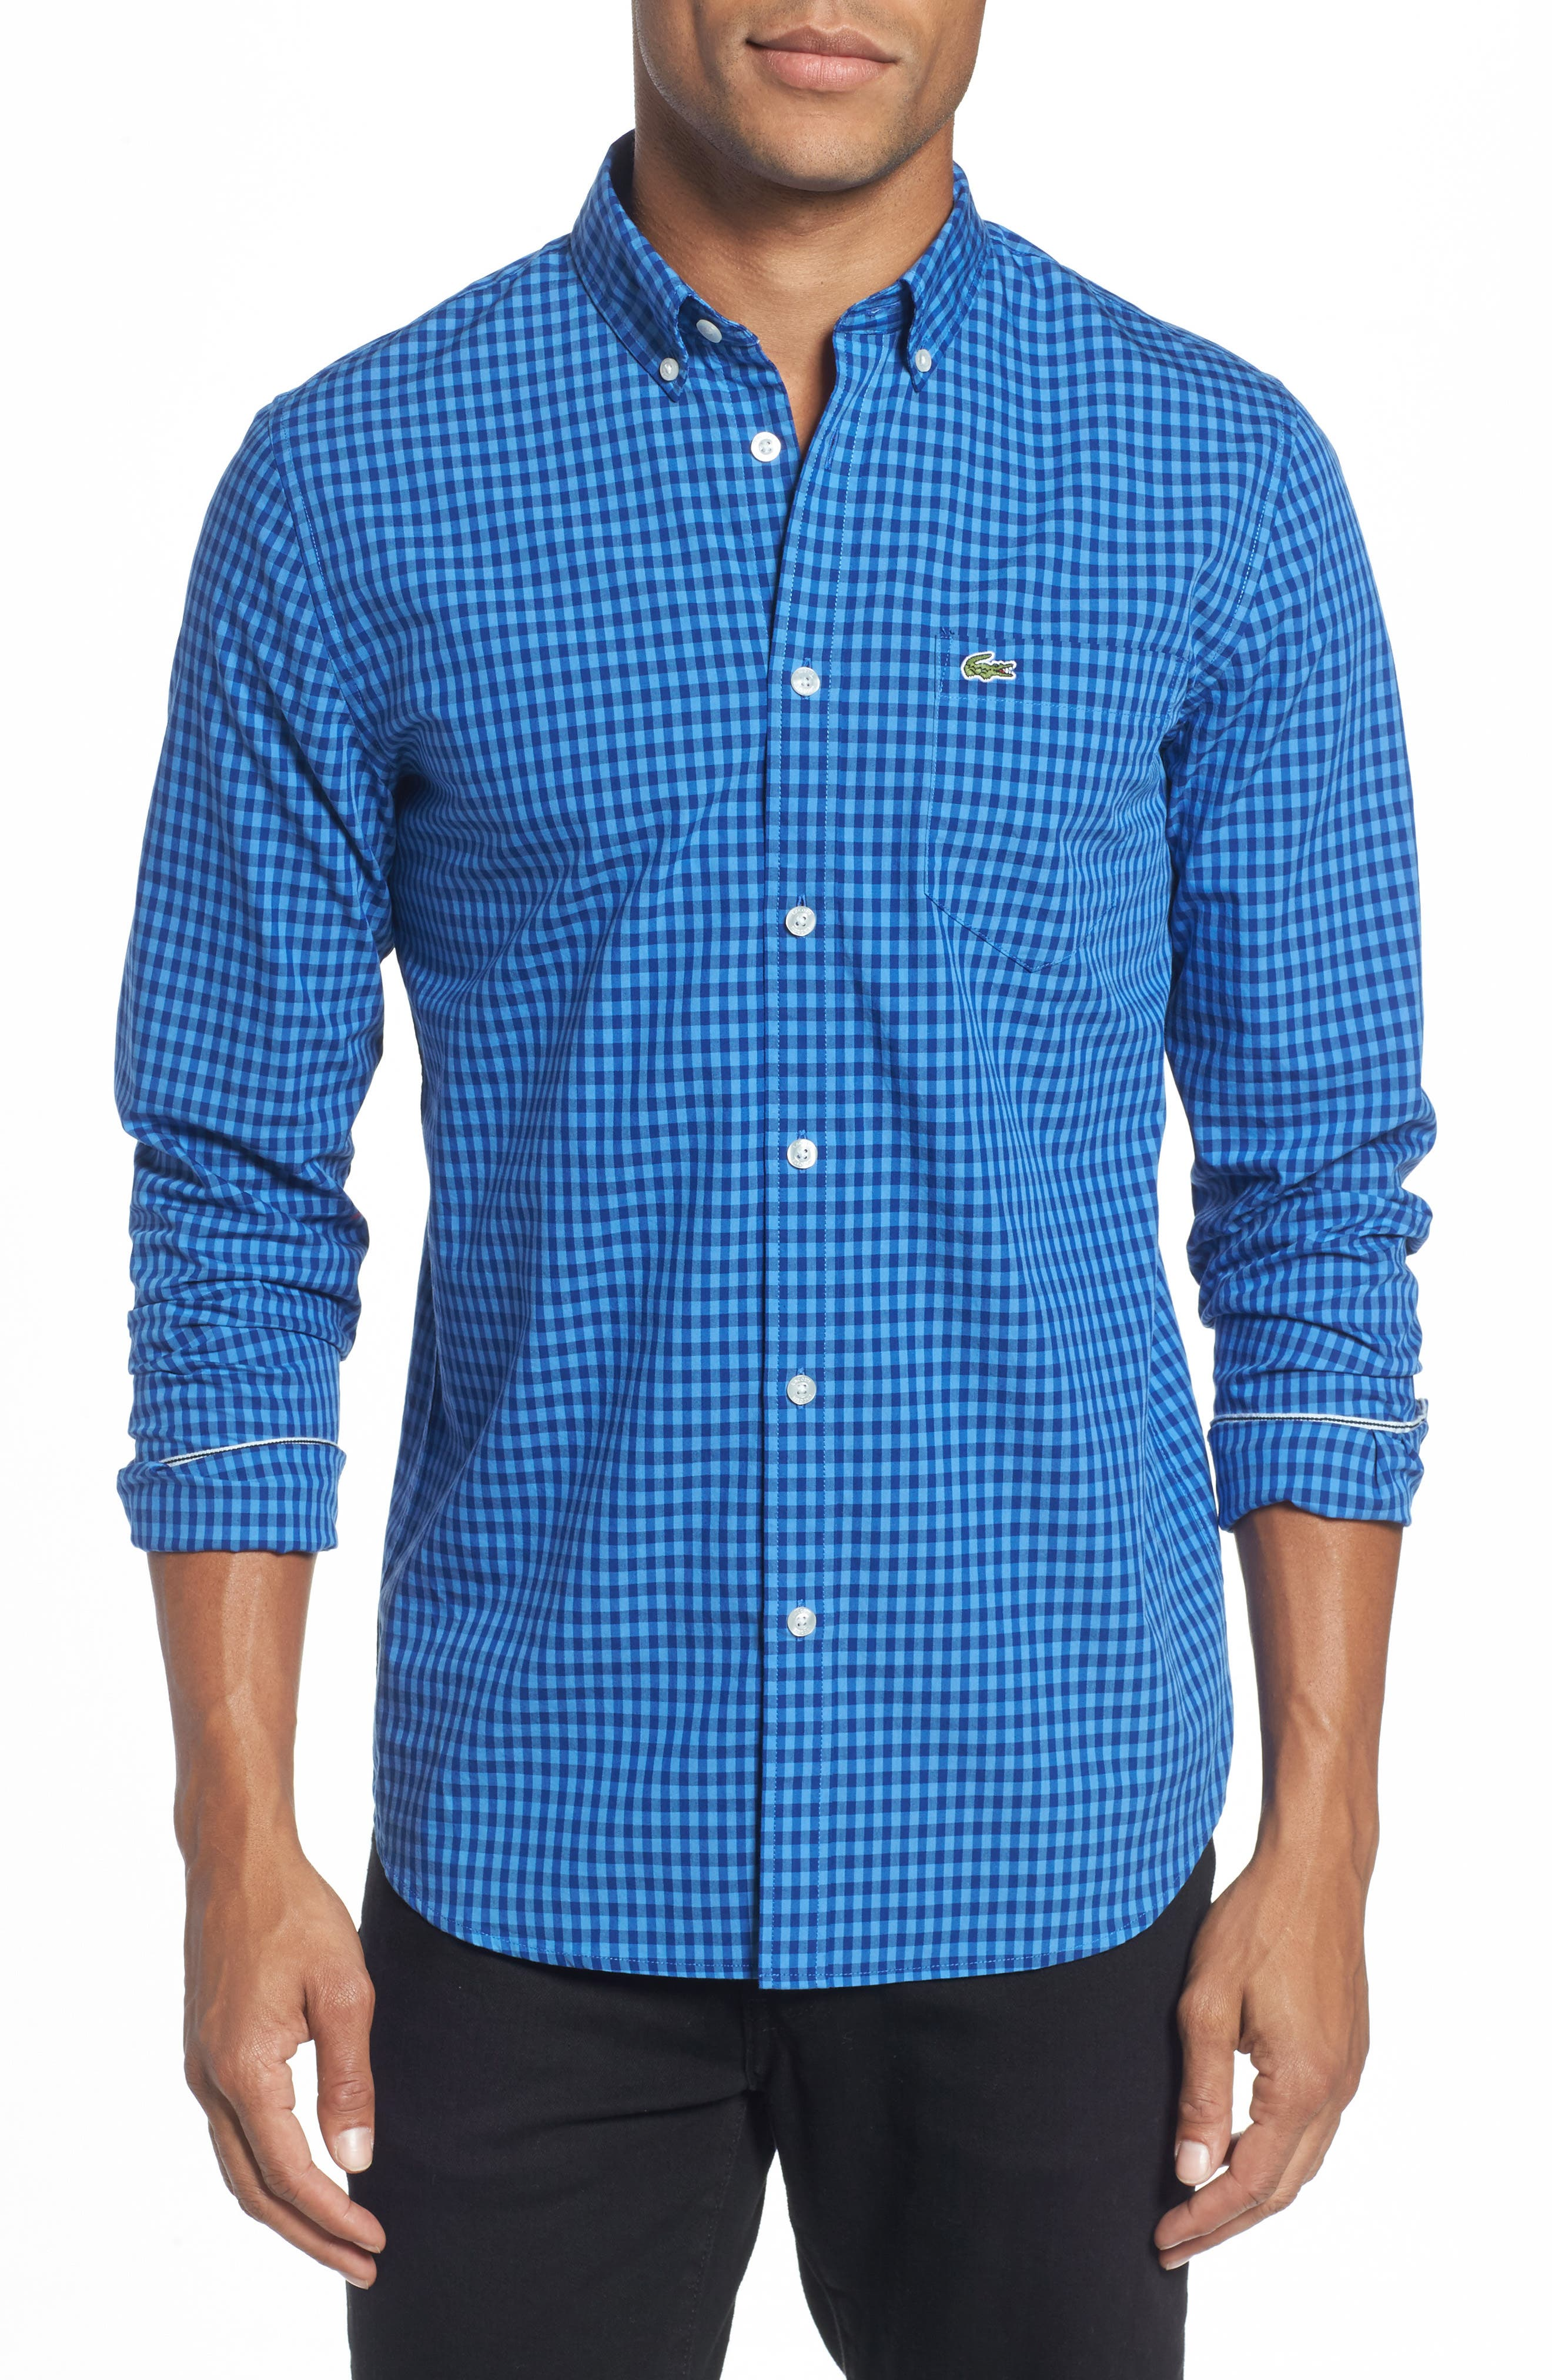 Gingham Check Poplin Shirt,                         Main,                         color, Blue